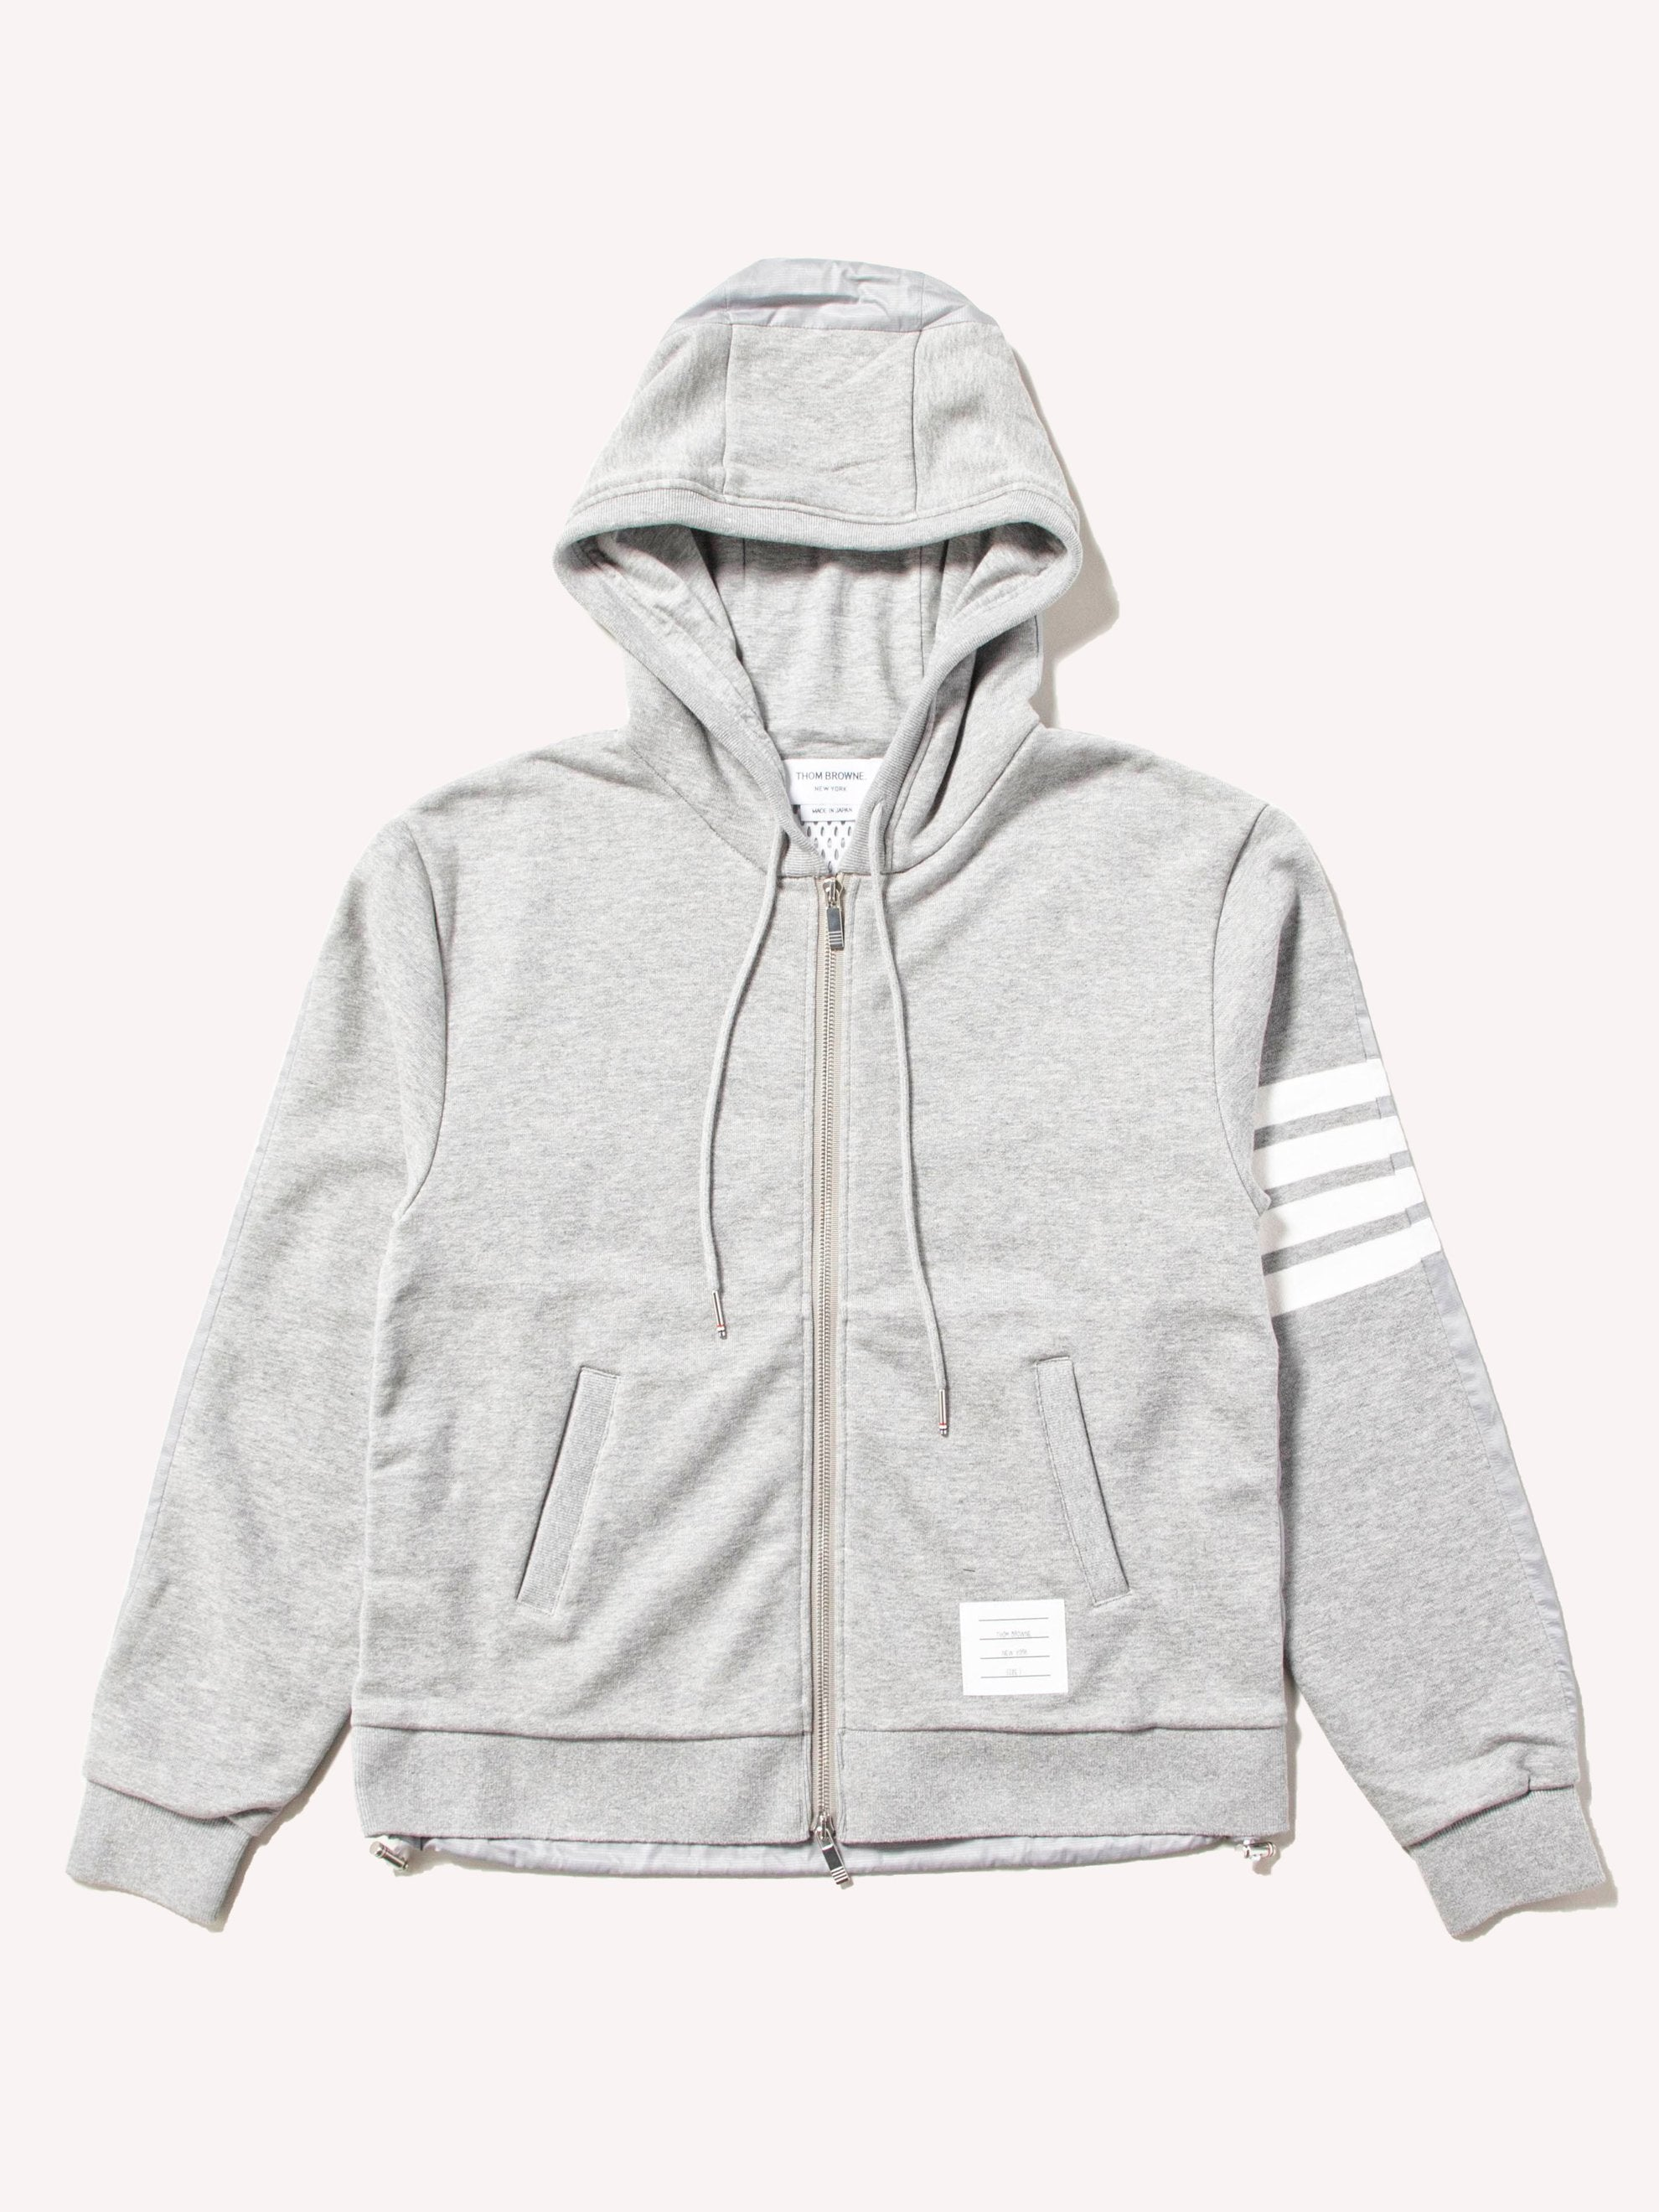 Light Grey Half And Half Zip Up Hoodie In Ripstop & Classic Loopback Jersey W/ 4 Bar Stripe 1